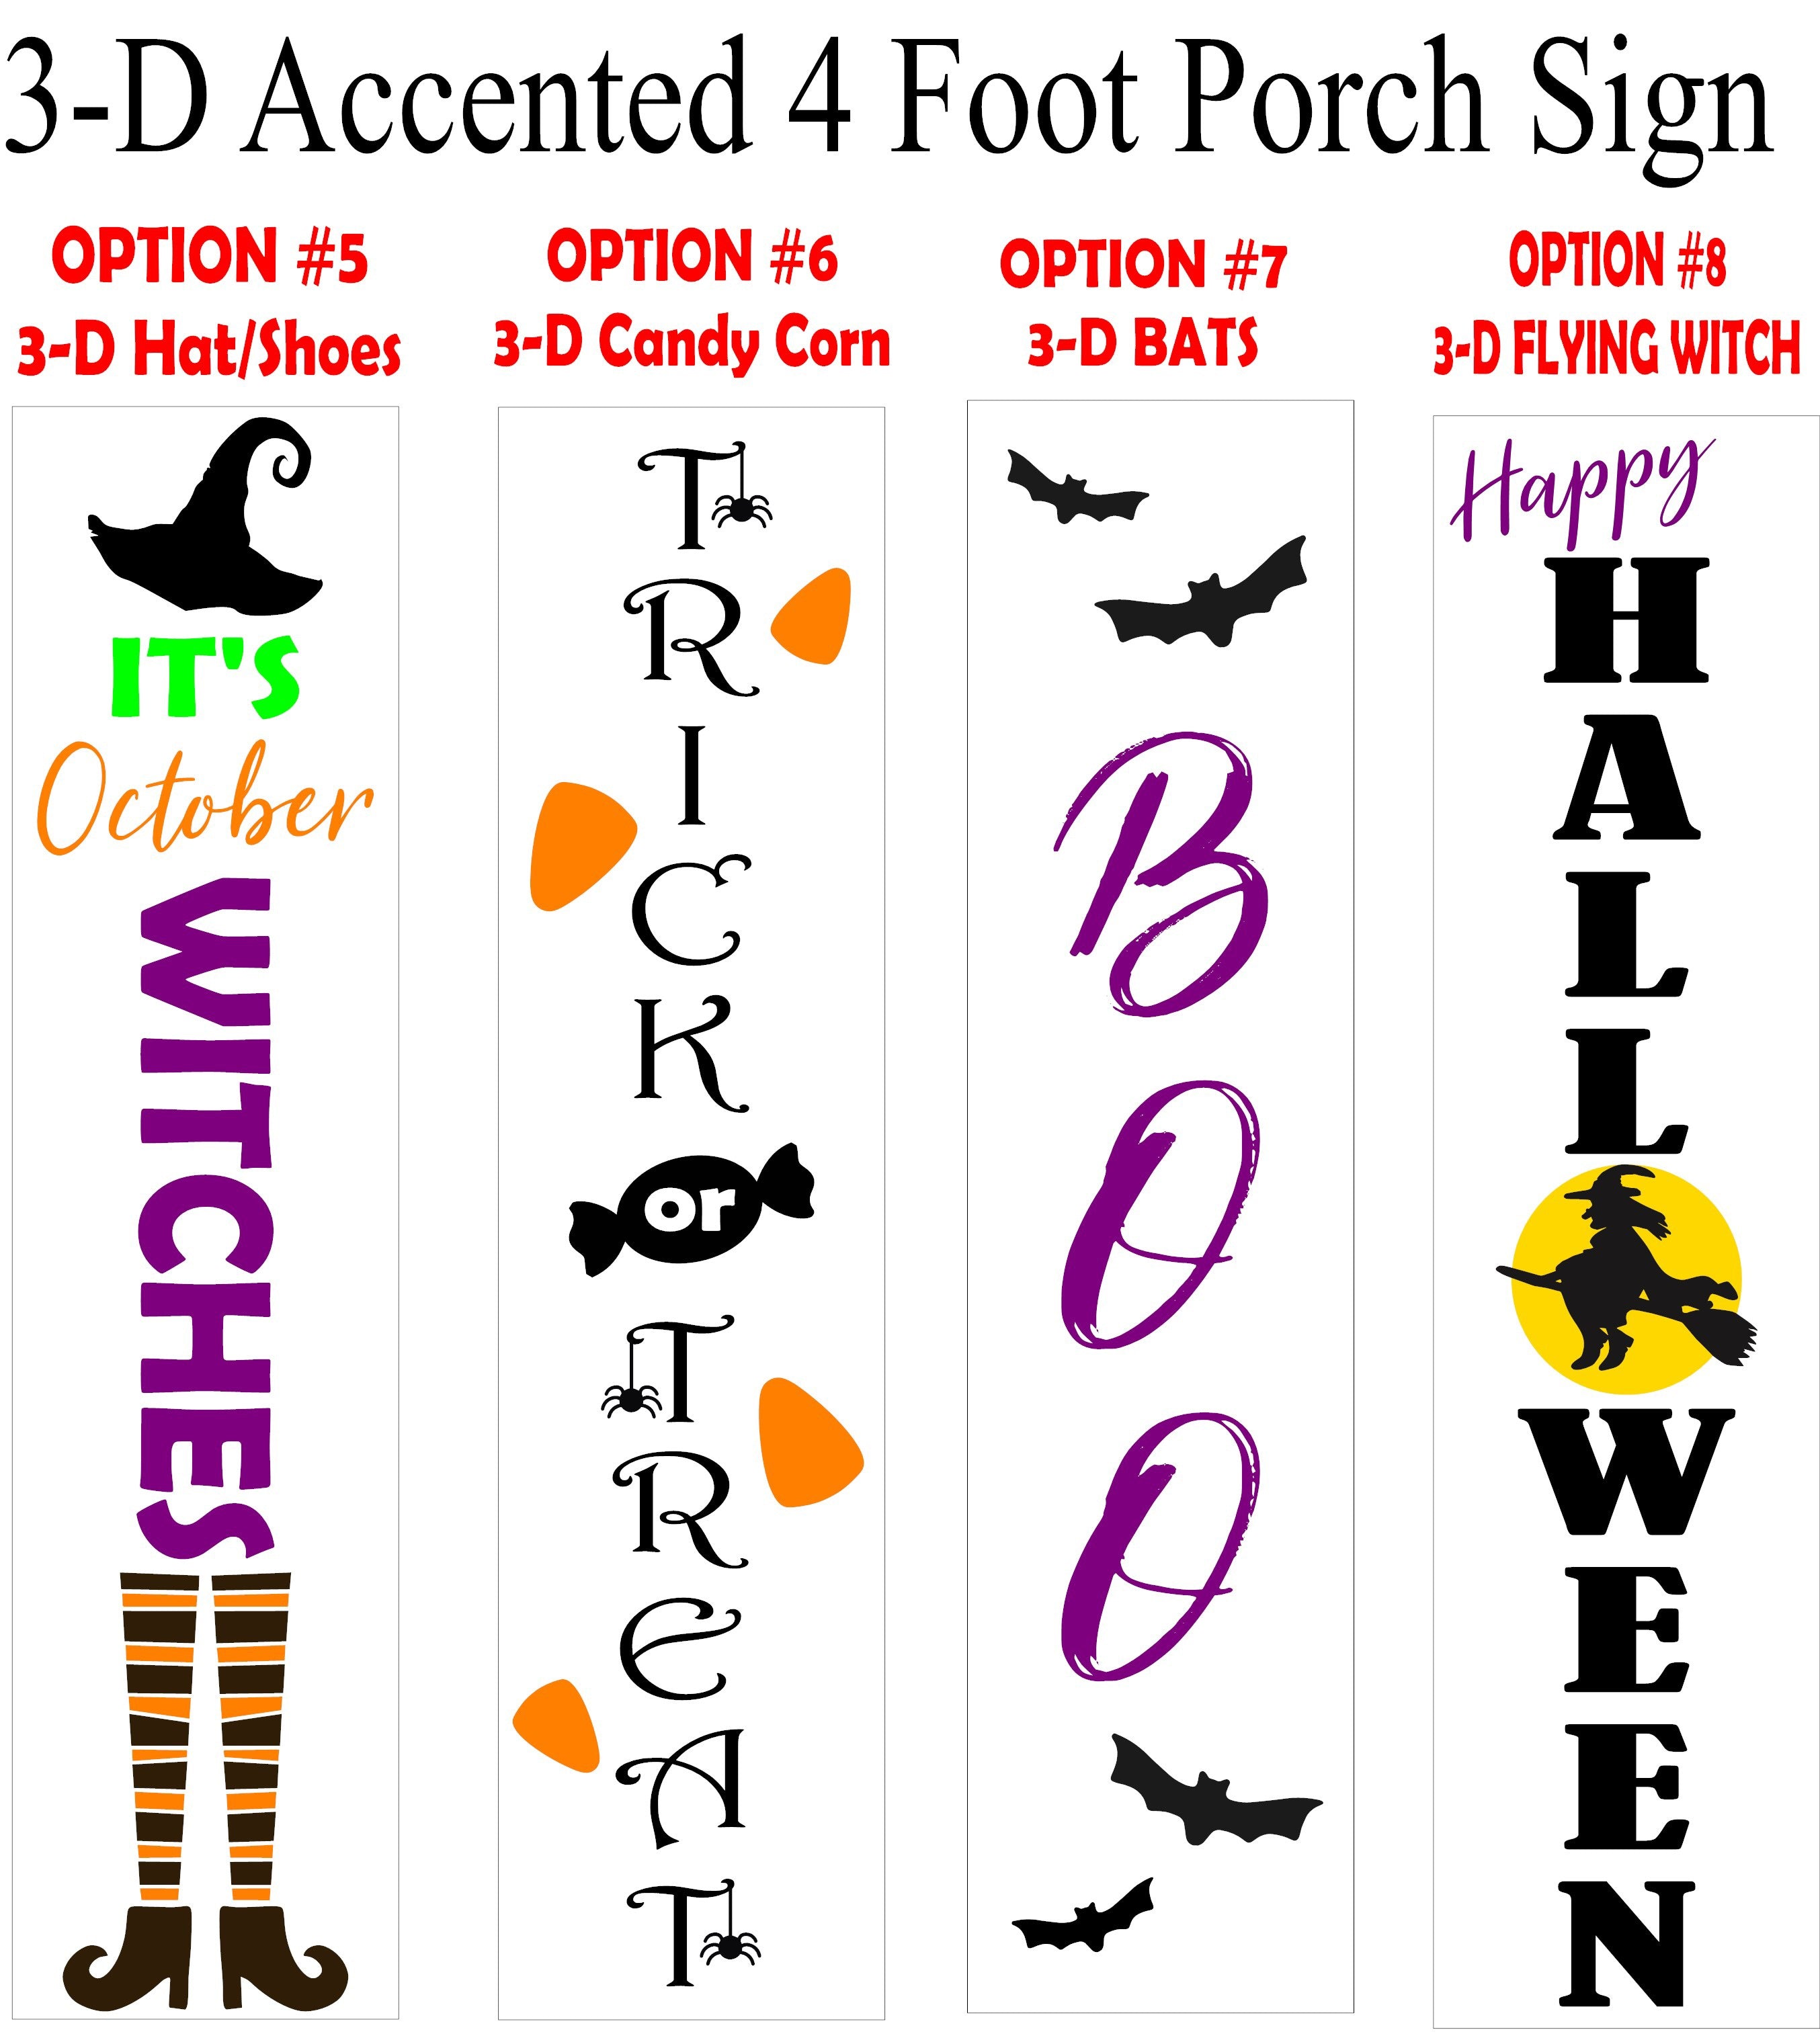 Fall/Halloween 4 Foot Porch Sign